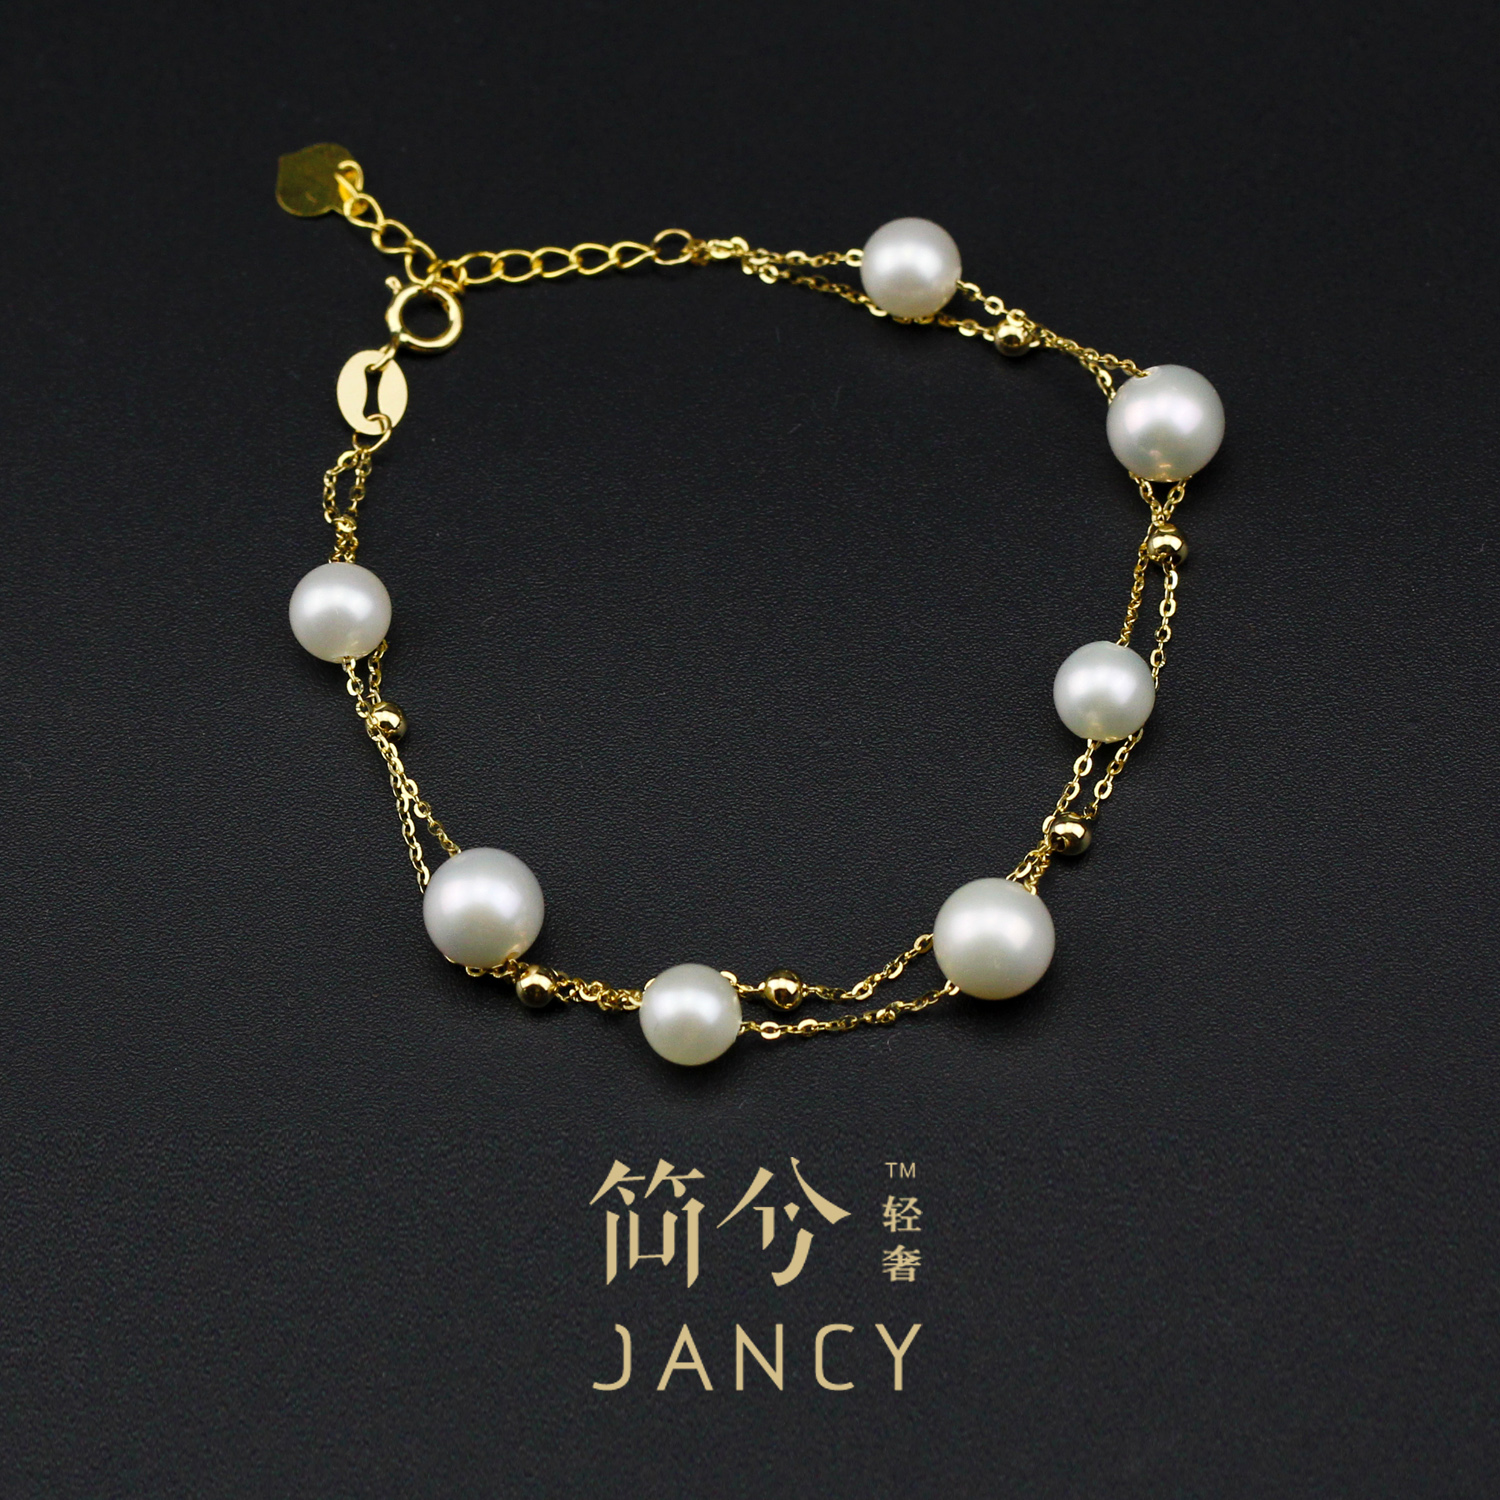 arum jewelry nice your out being the and expresses balance beauty touching korean centered concept harmony of as using be inside around a with beautiful bracelet banner message